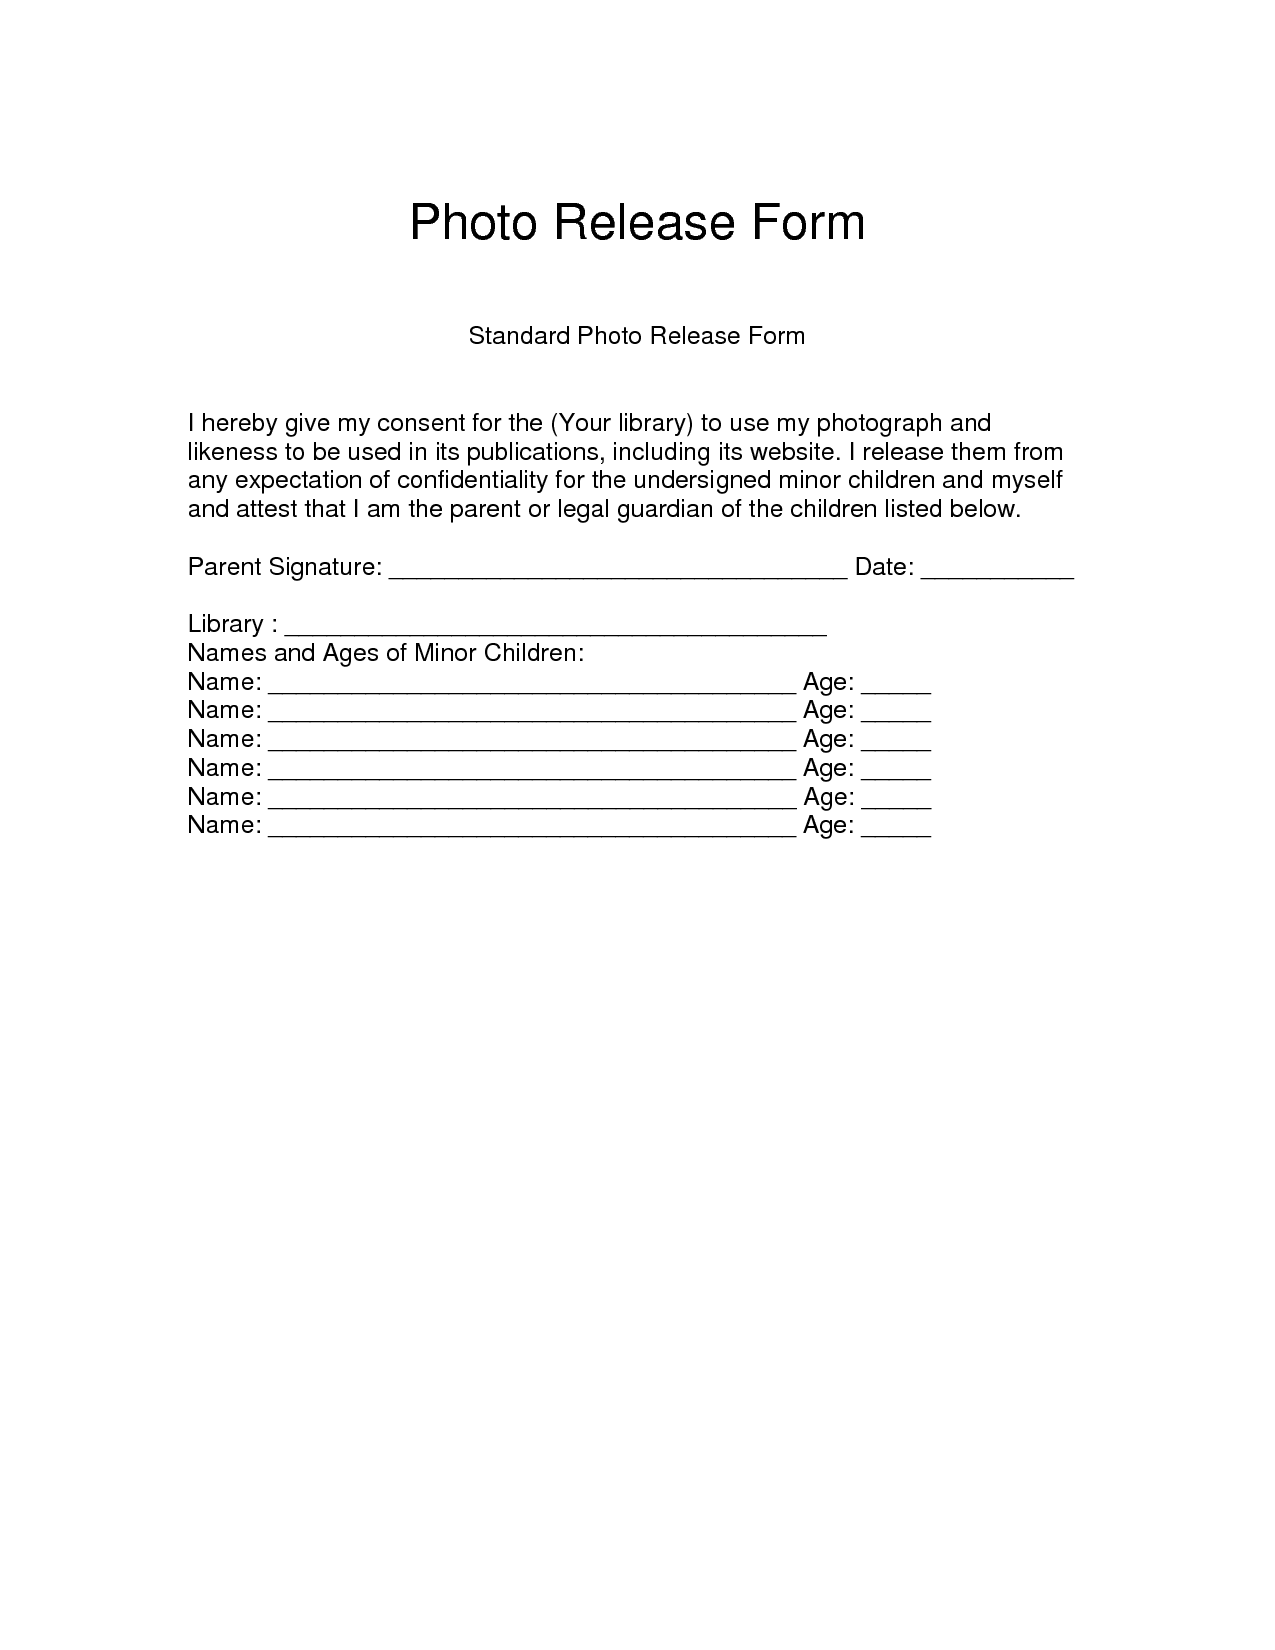 Free Photographer Release Form  Photo Release Form  Download As